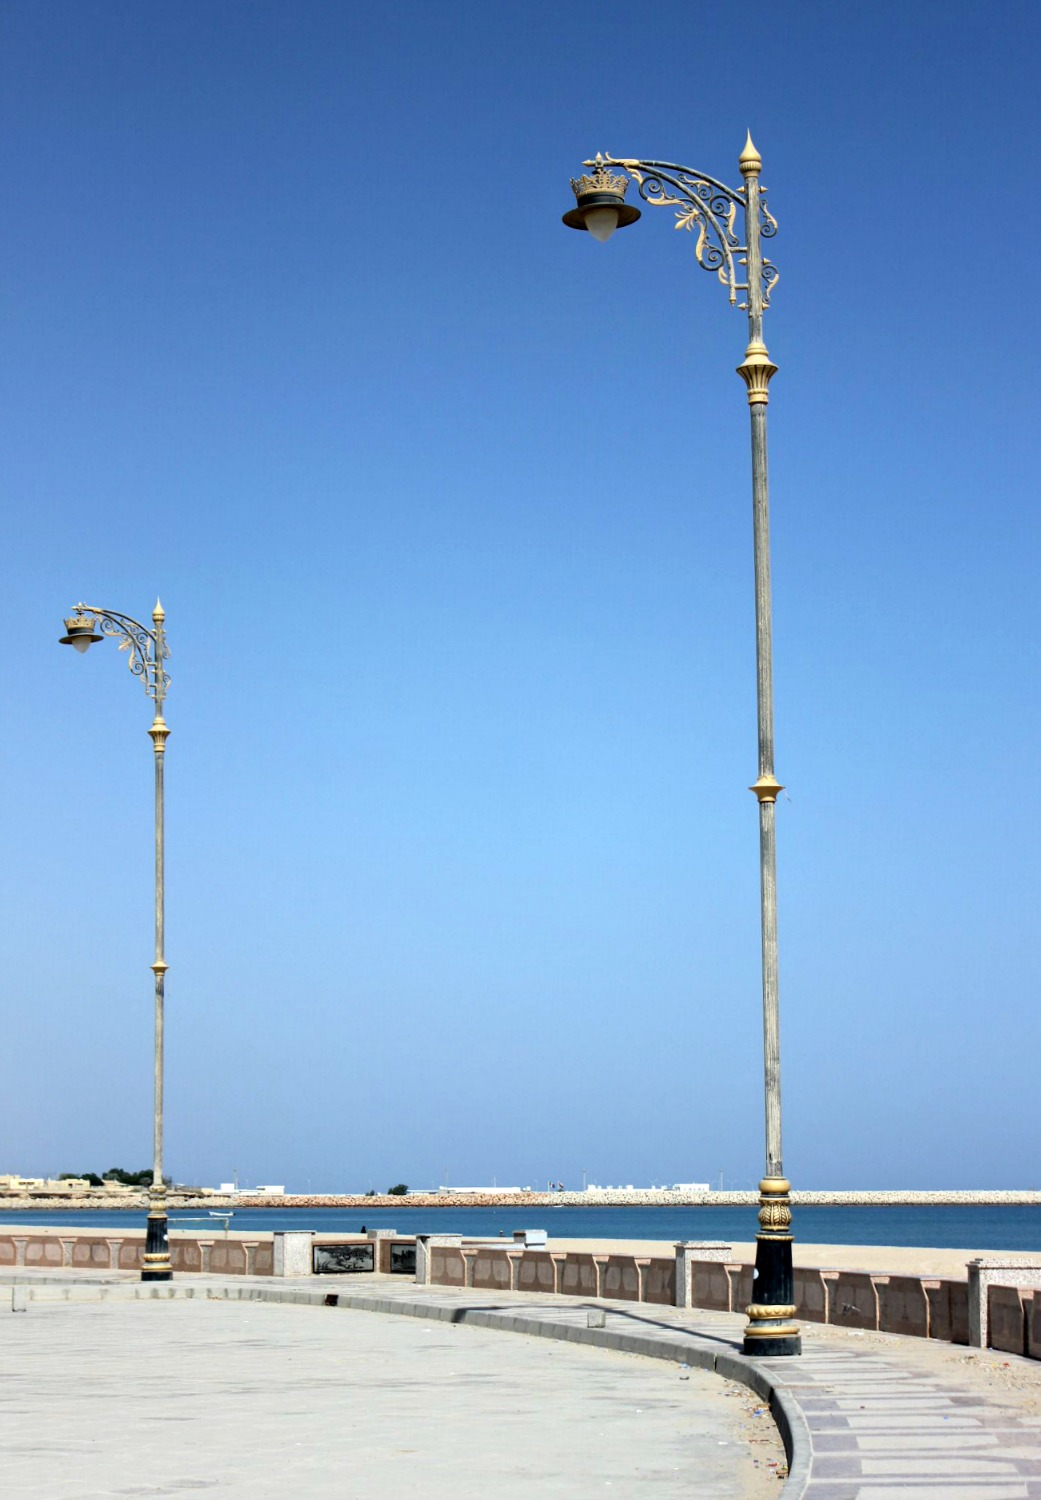 Ornate lampposts against a blue sky on the Corniche at Sur in Oman - my nine reasons to visit Oman with kids